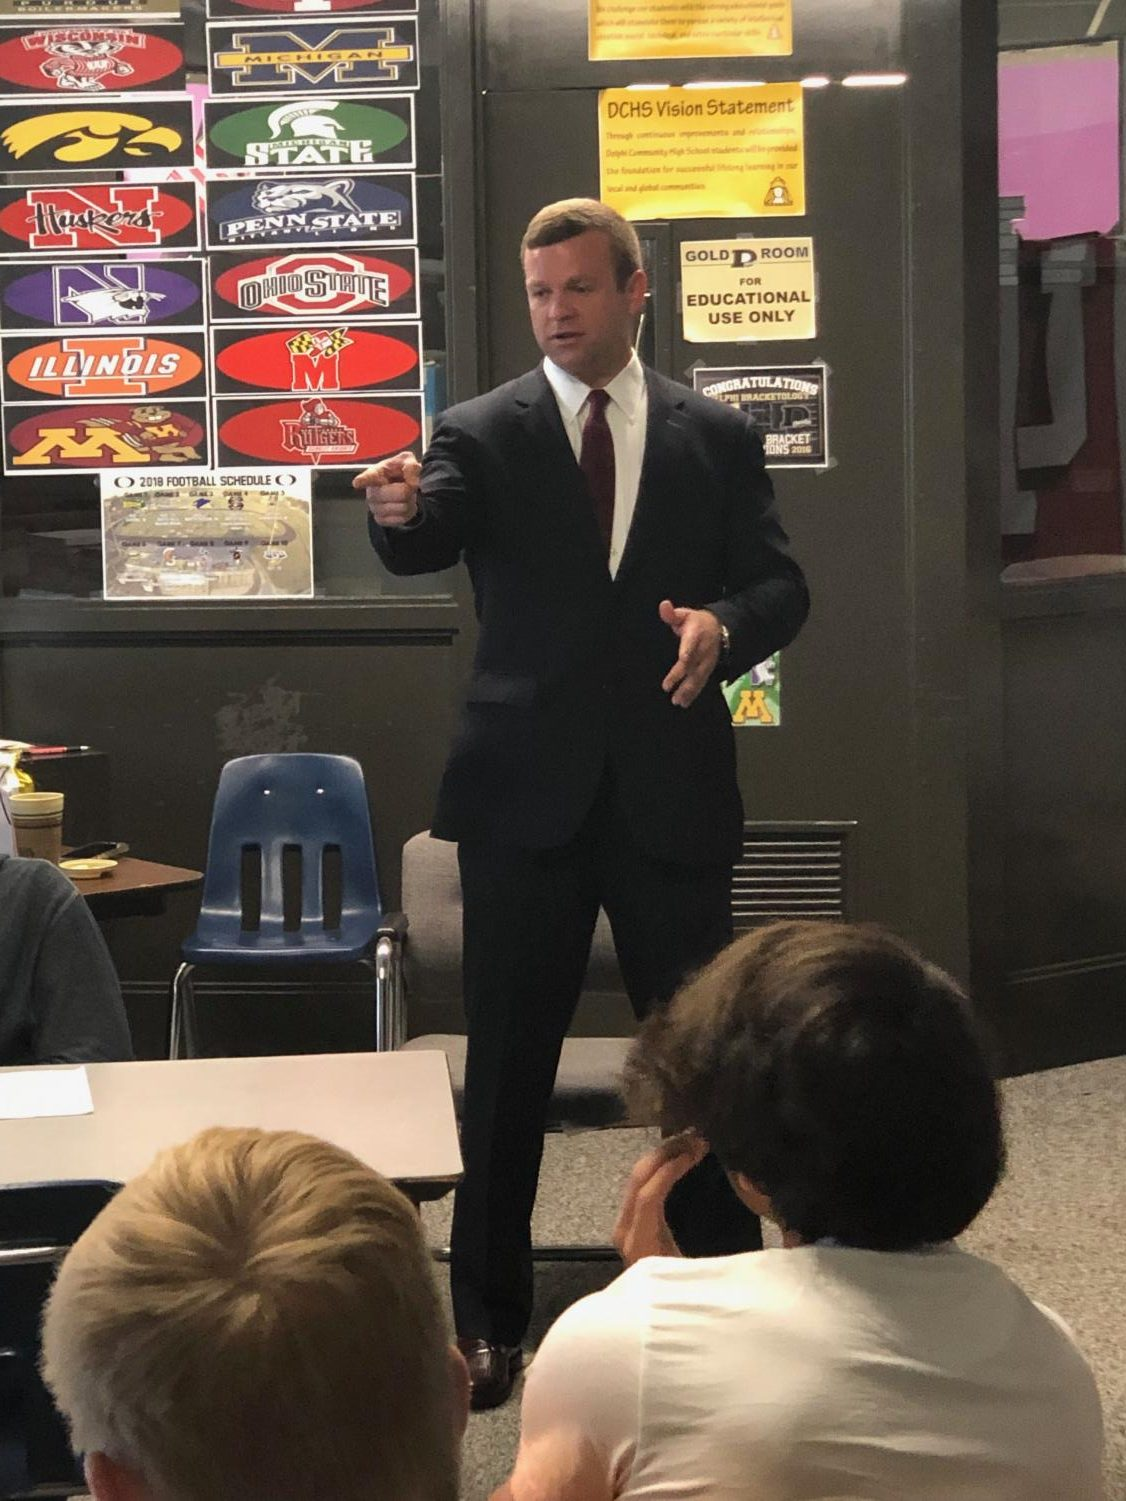 DCHS graduate Tyler Mose, CEO of Indirap Productions, a video production company, was one of 35 professionals presenting at Delphi Community High School's Career Day.